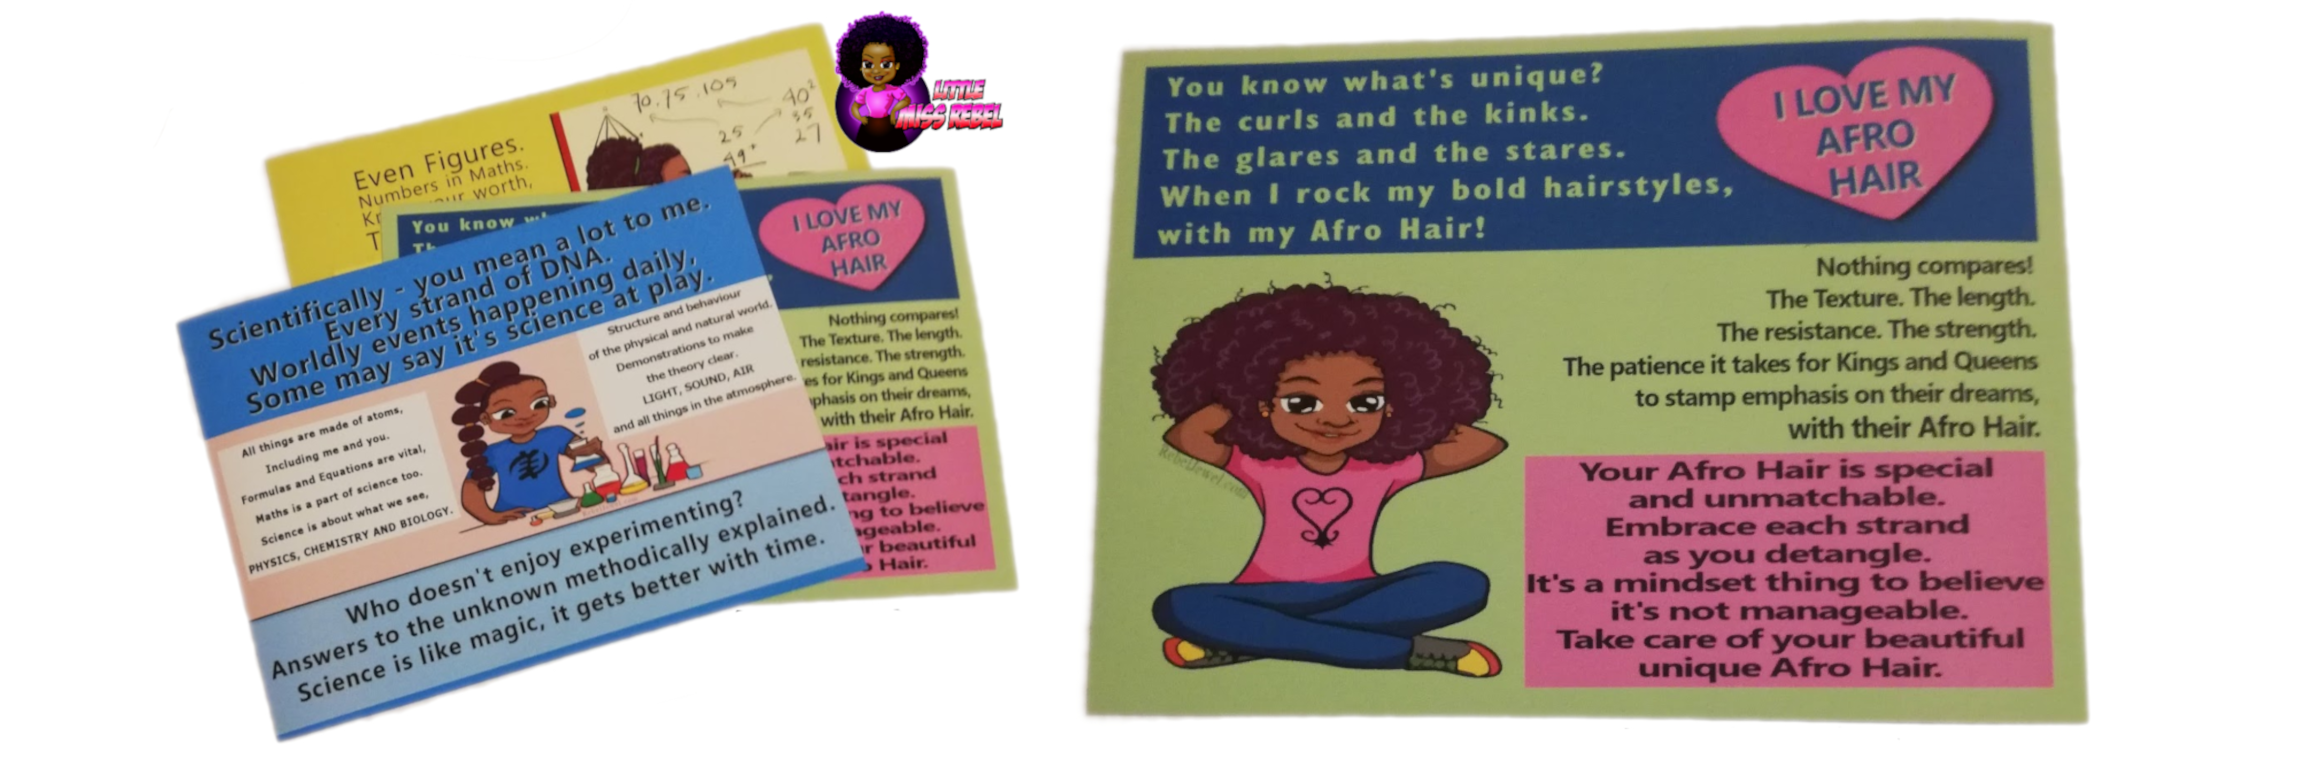 fridge magnets lil miss rebel afro hair education affirmations adinkra symbols sankofa gye nyame duafe